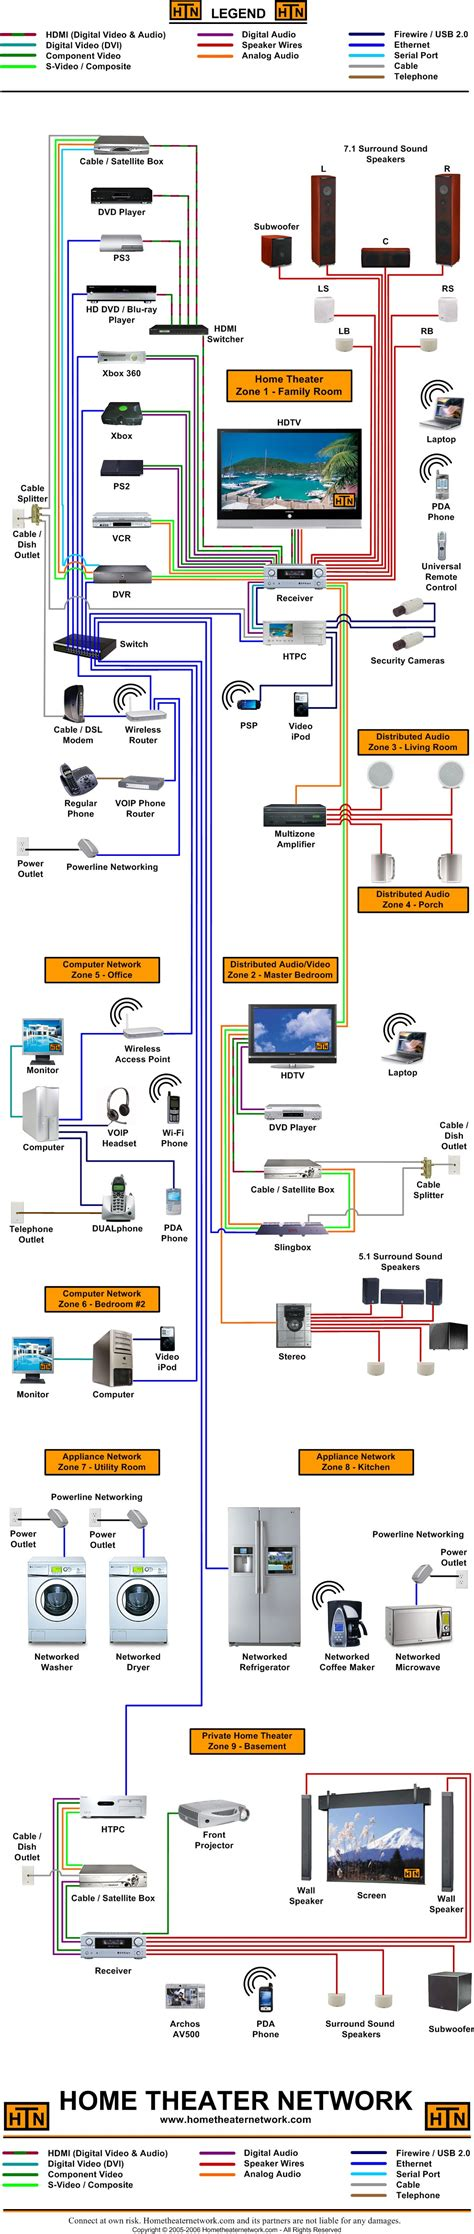 home entertainment network design home theater network s large block diagram